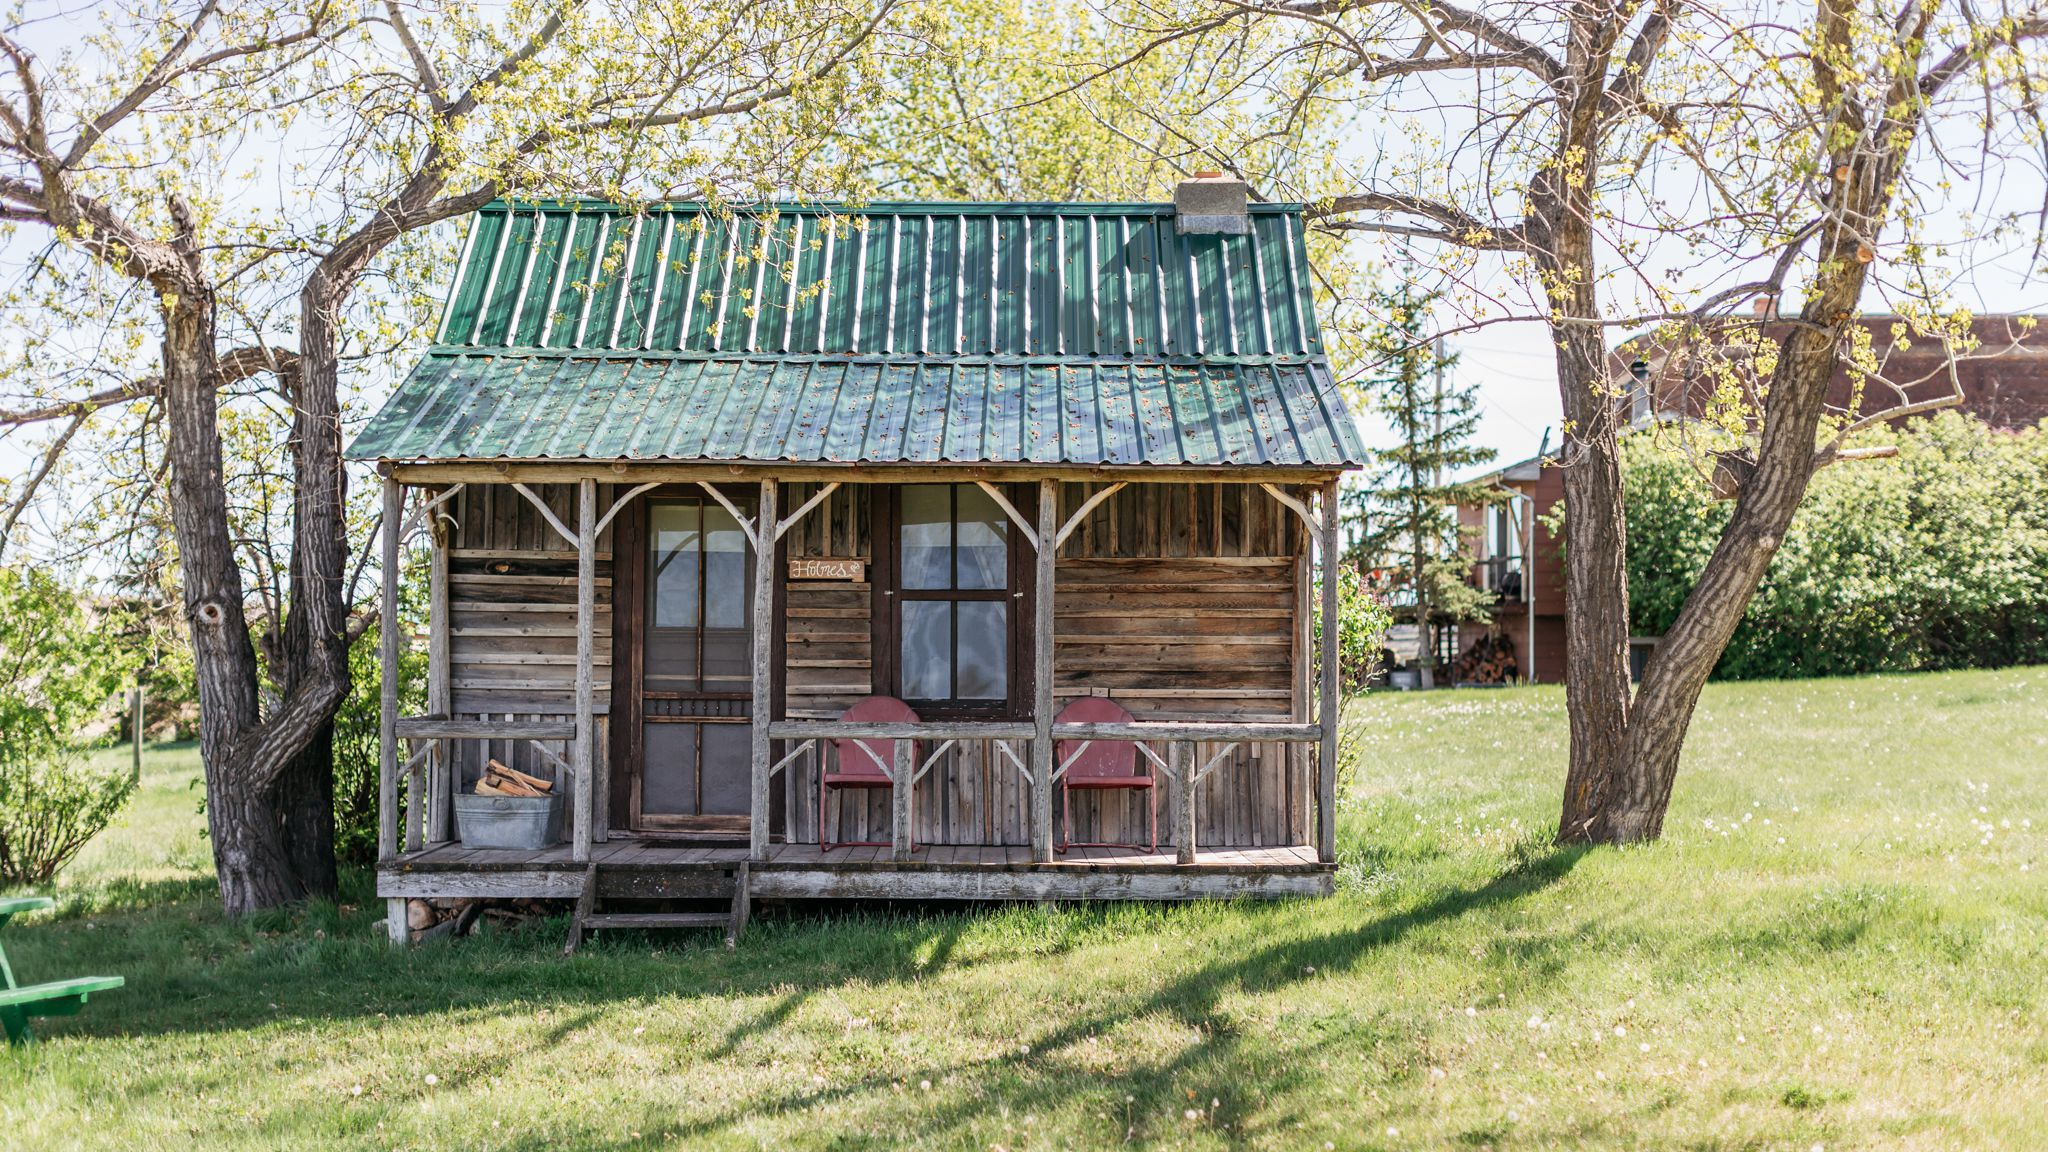 Small Cabins You Can Diy Or Buy For 300 And Up